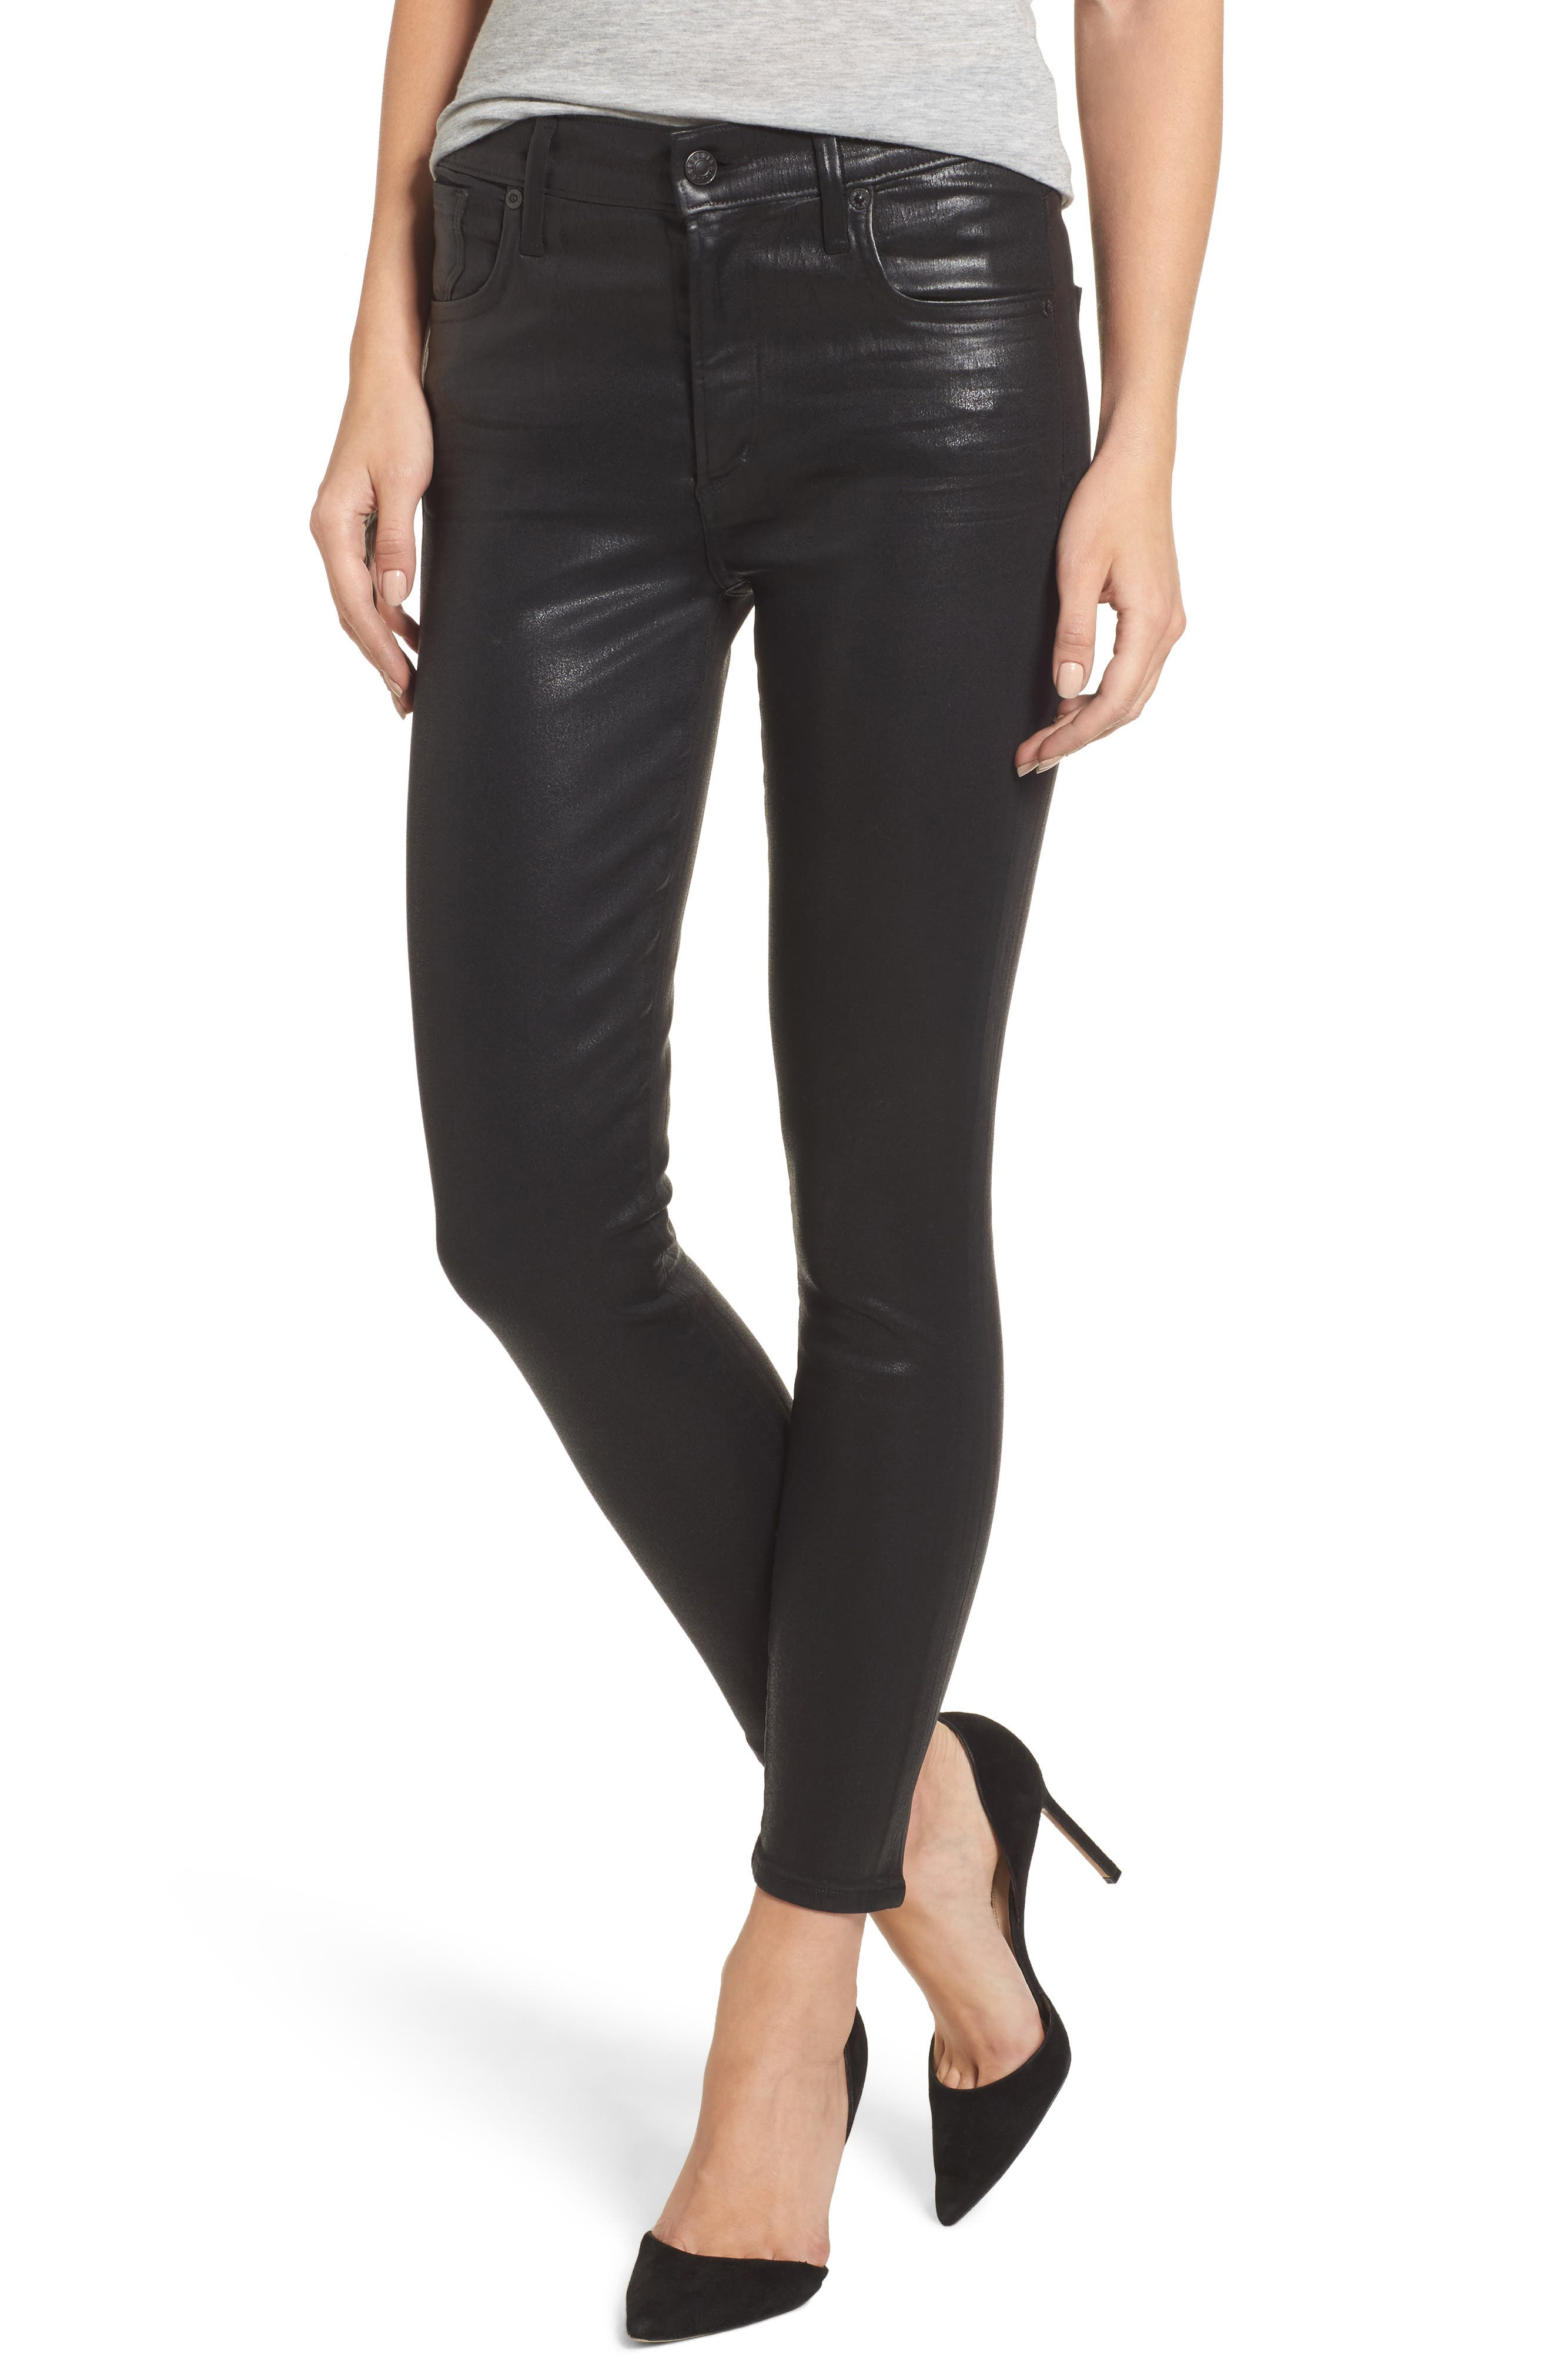 Alternate Image 1 Selected - AGOLDE Sophie Coated High Waist Crop Skinny Jeans (Black Leatherette)